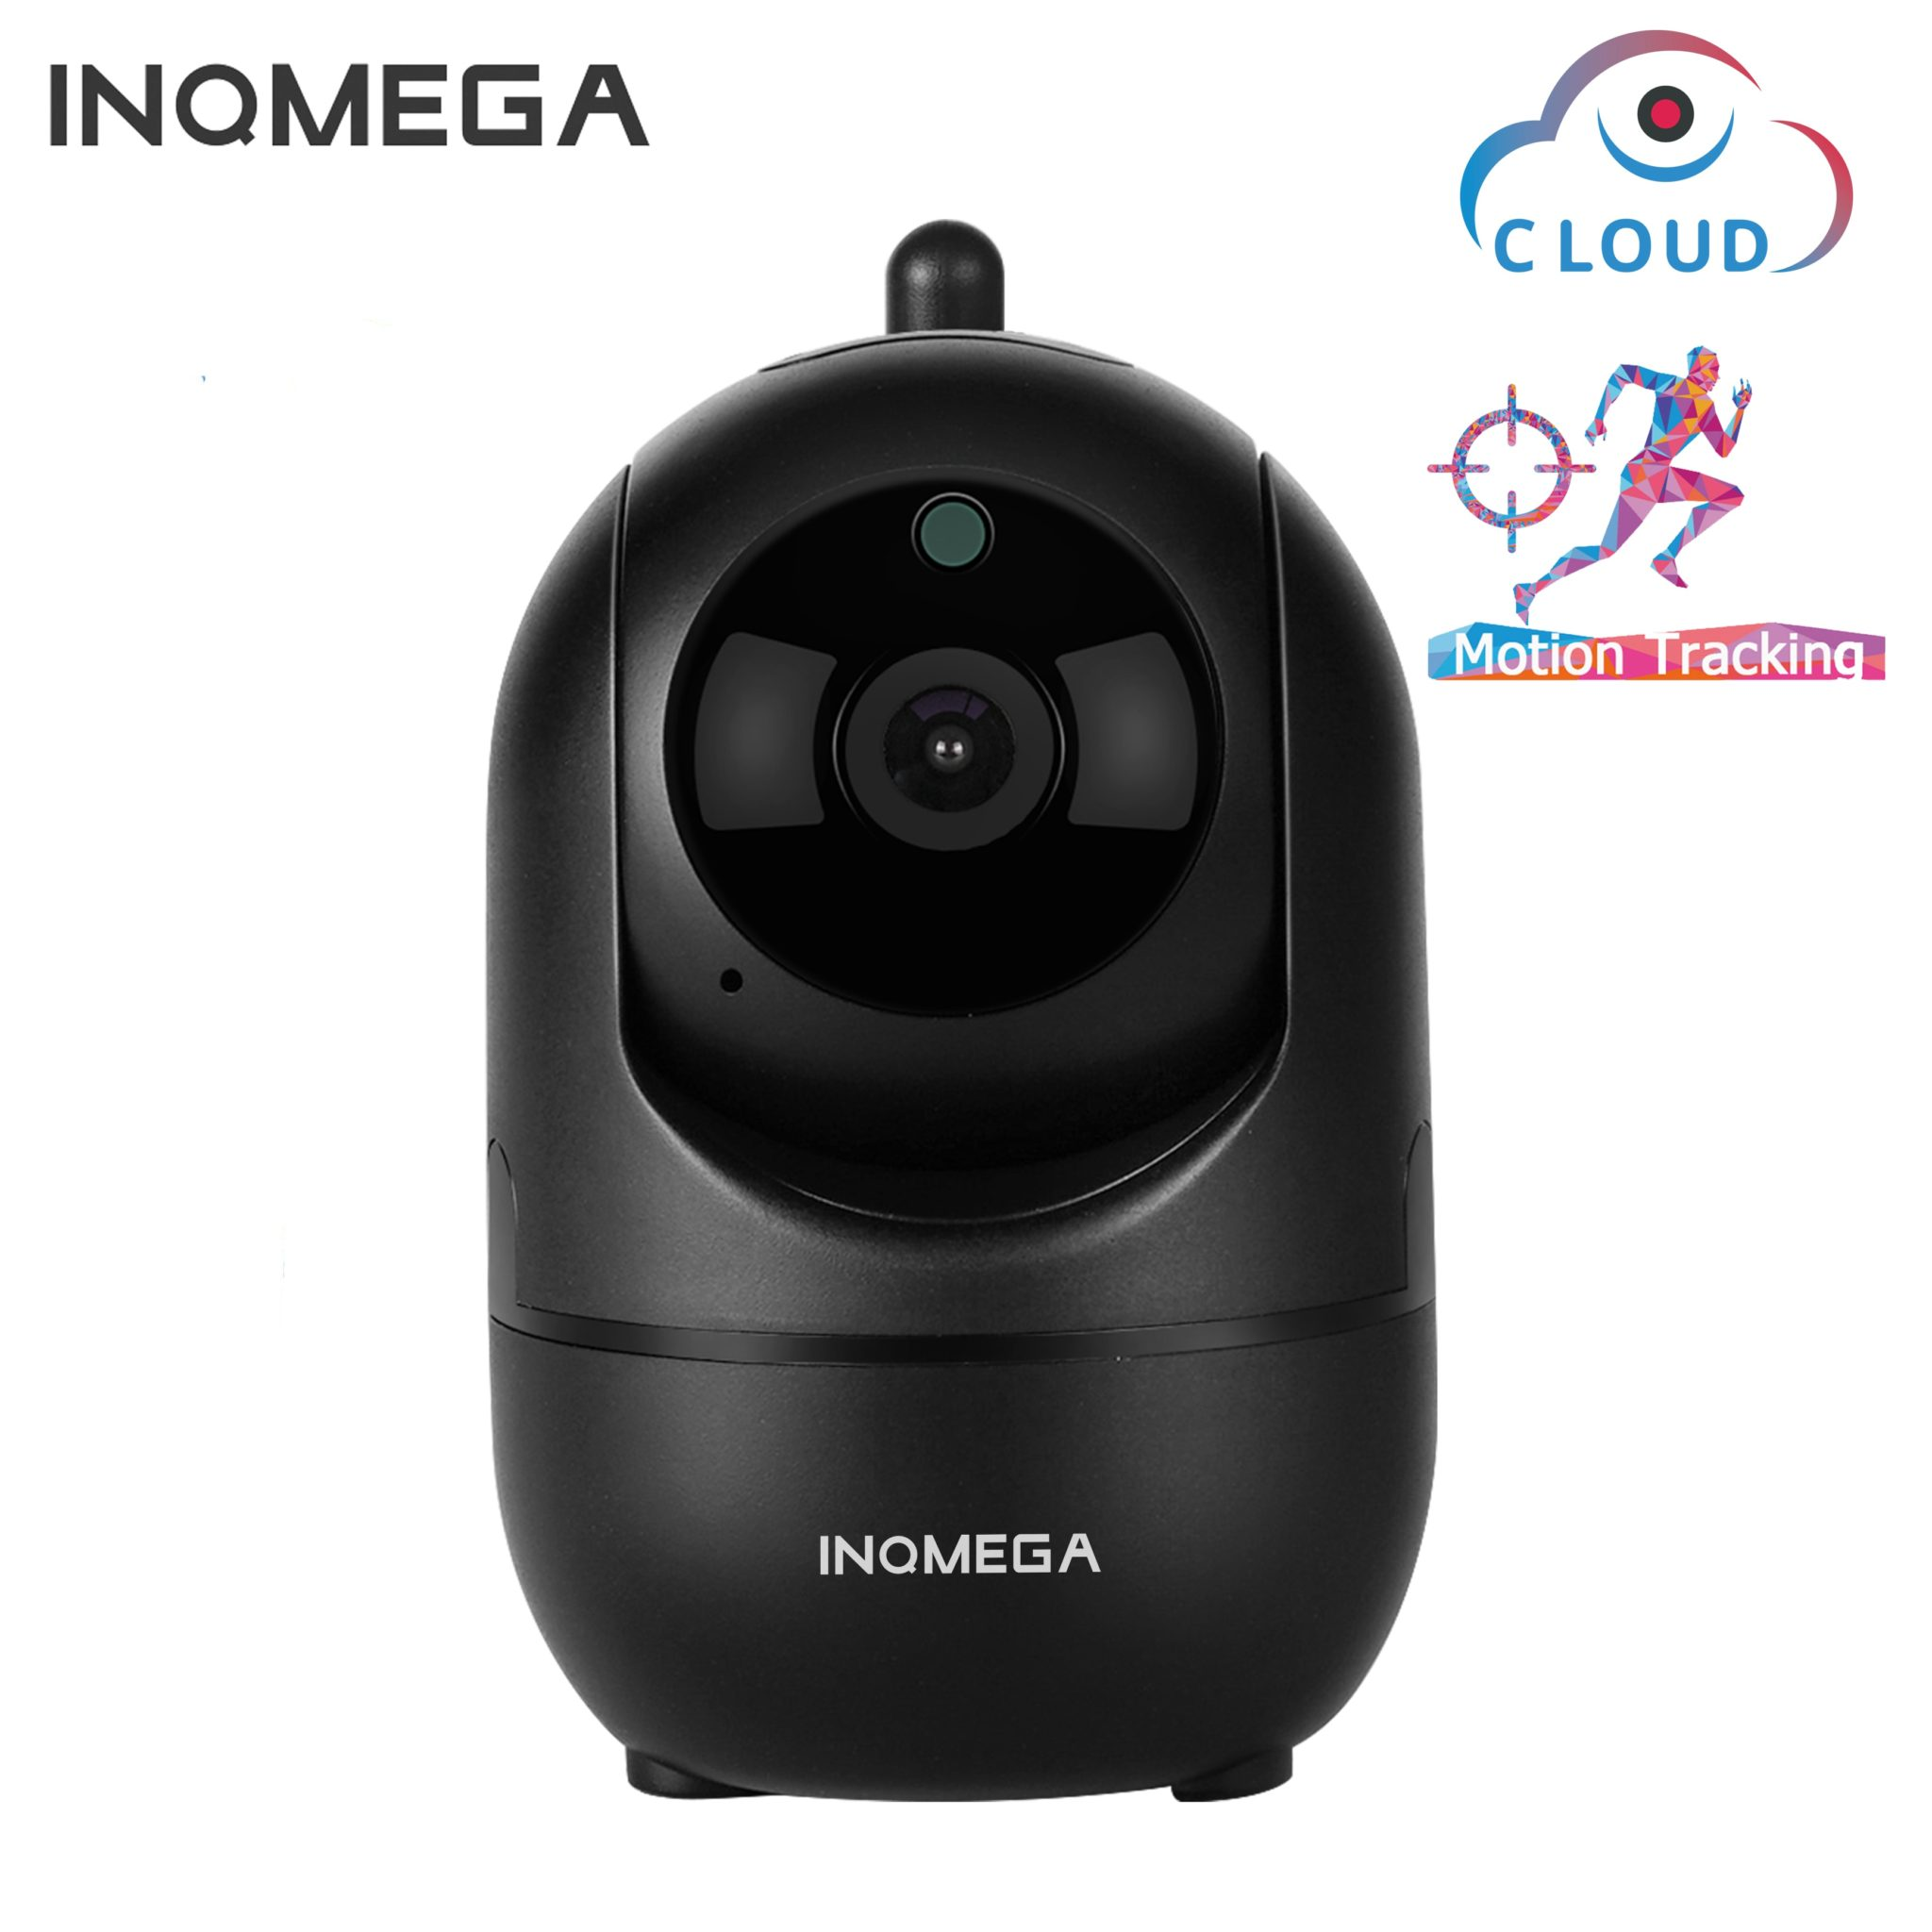 PTZ Security Camera & Baby Monitor - Motion Tracking and 2 way audio communication